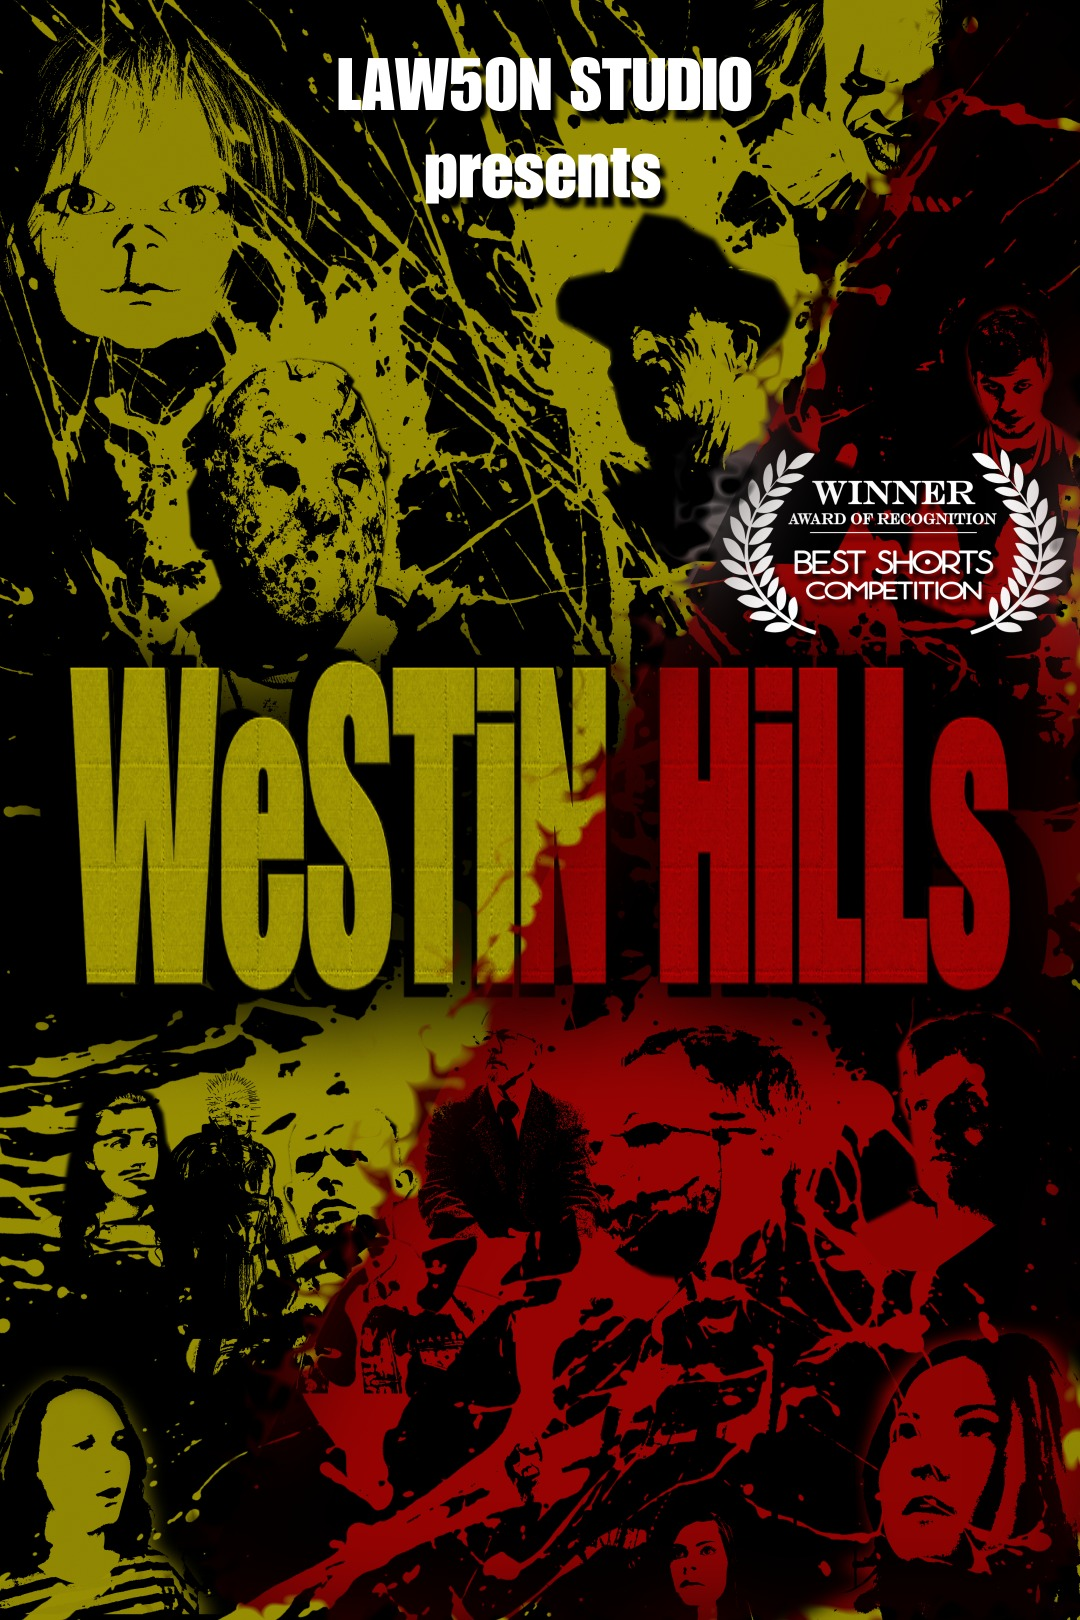 Westin Hills poster - a film by Steven J. R. Lawson, a film-maker from Prudhoe.